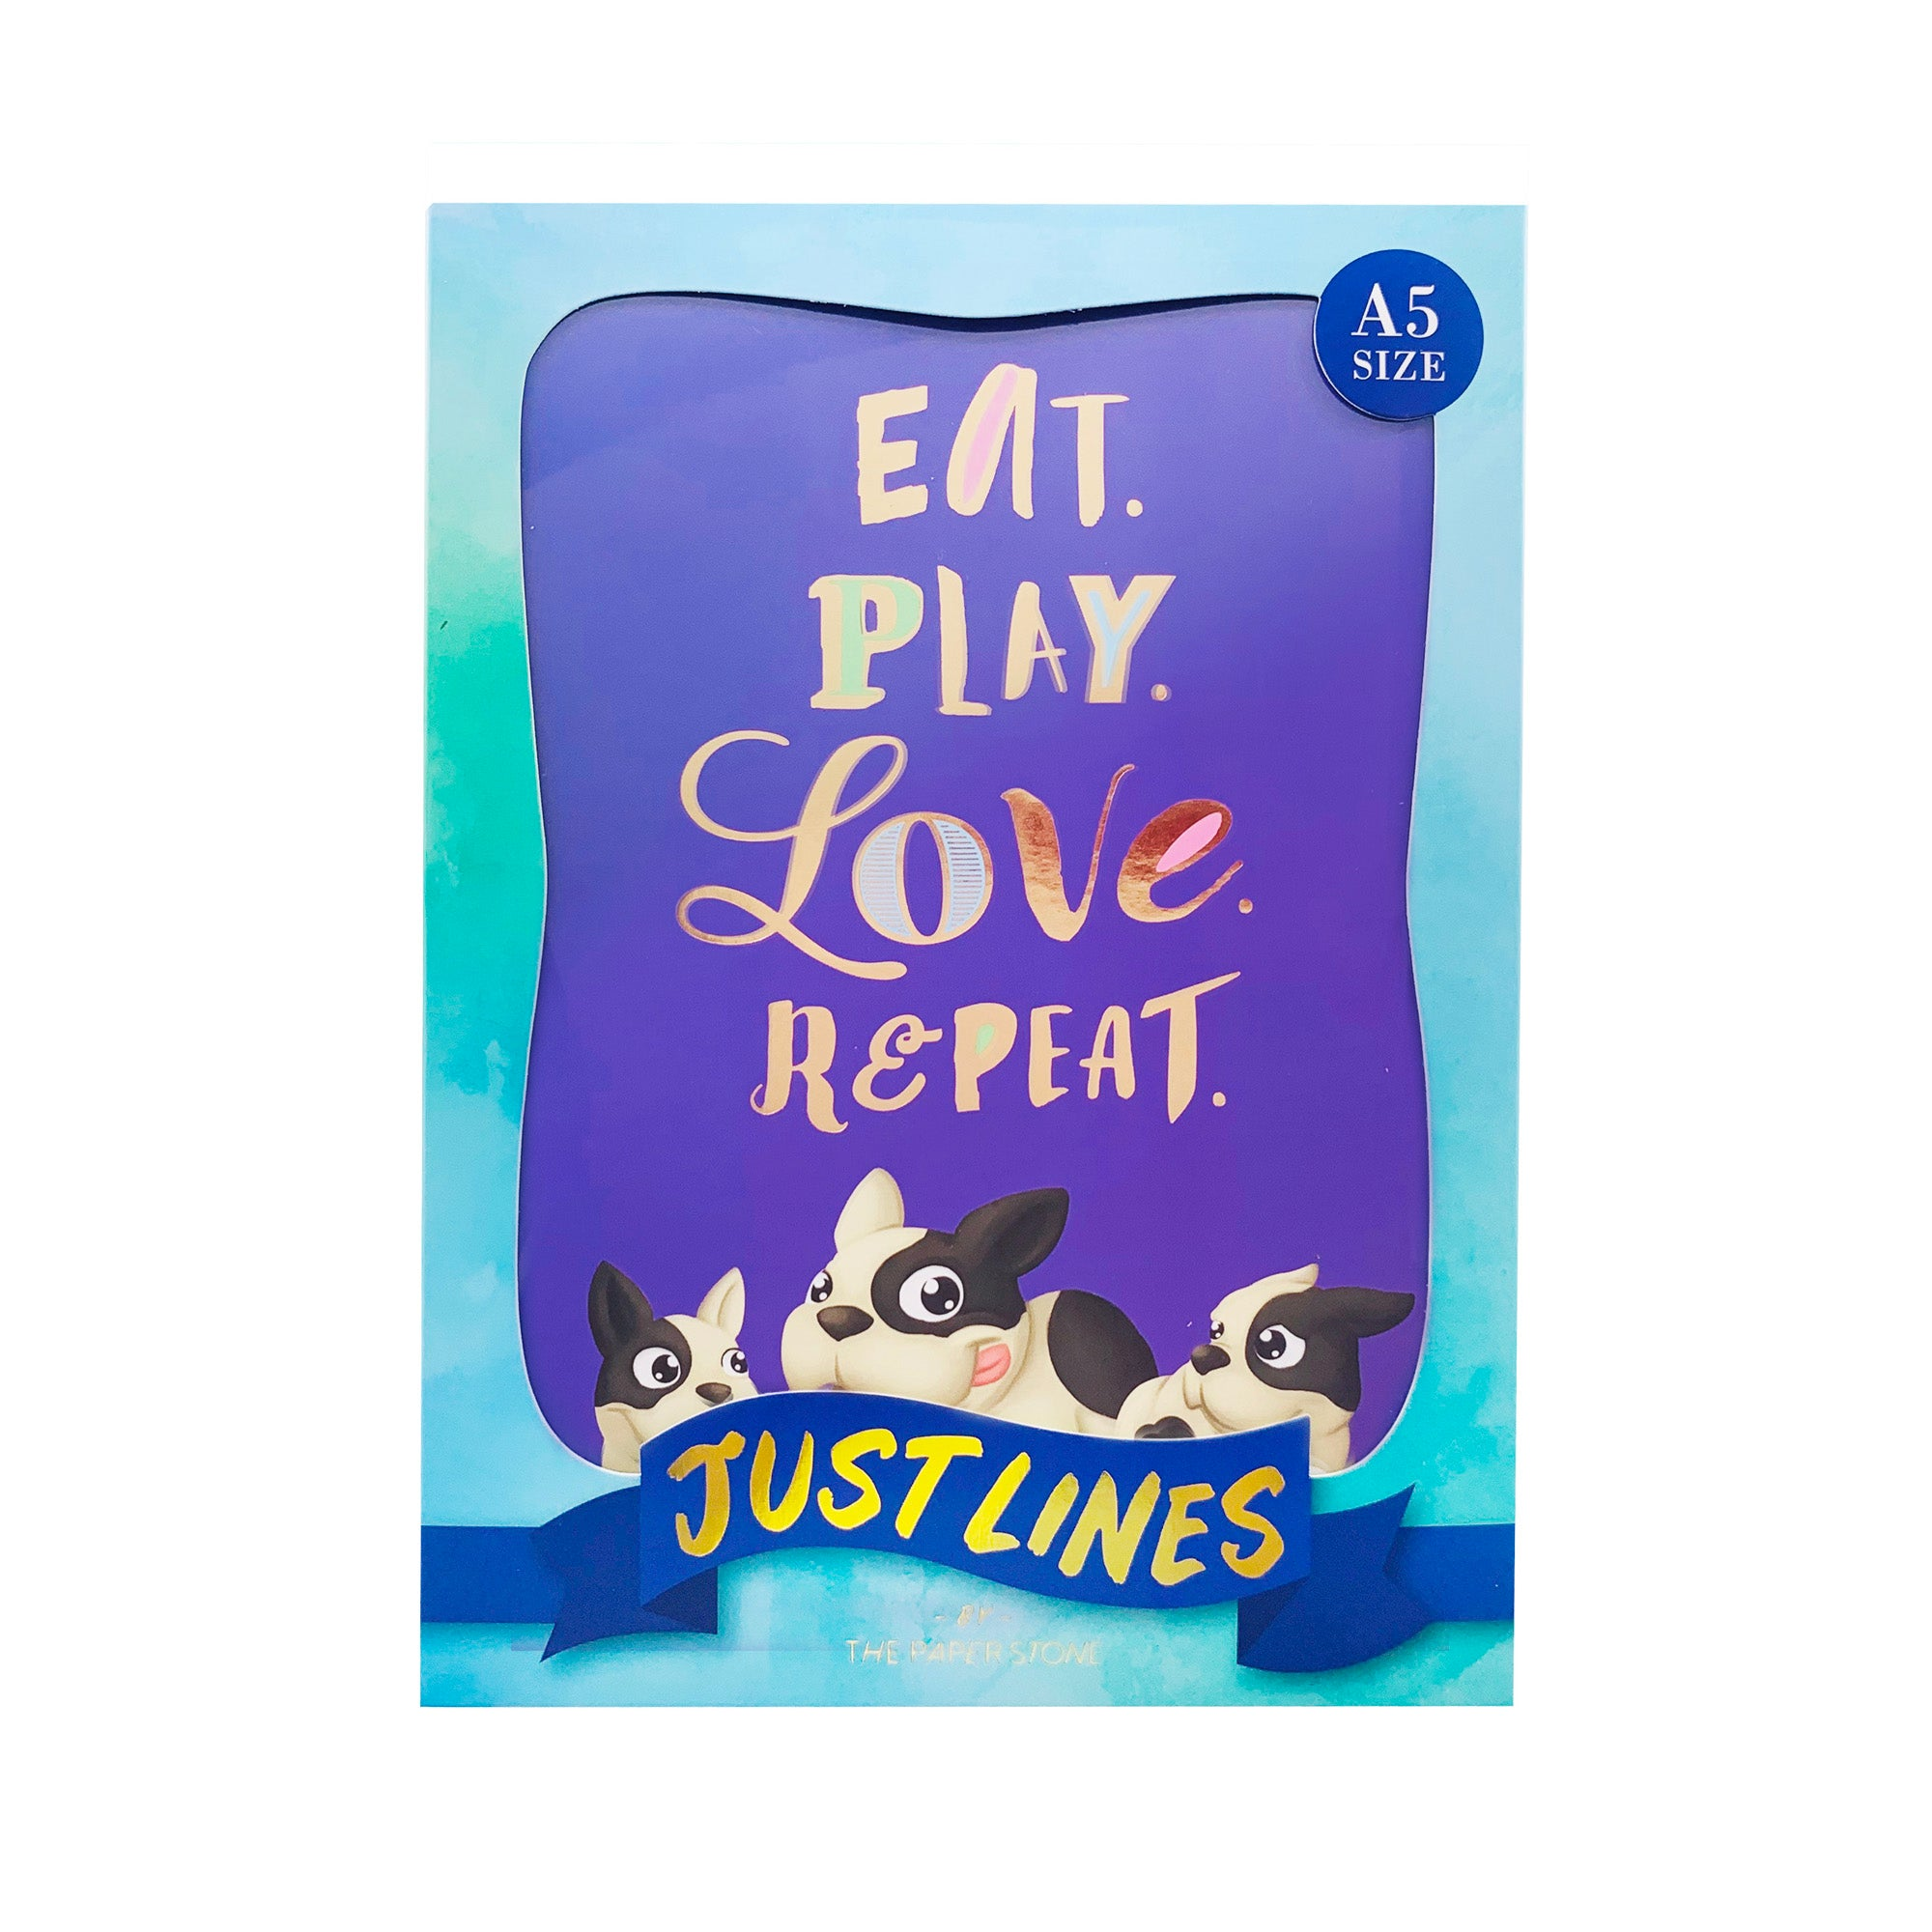 Just Lines - Eat Play Love Frenchie